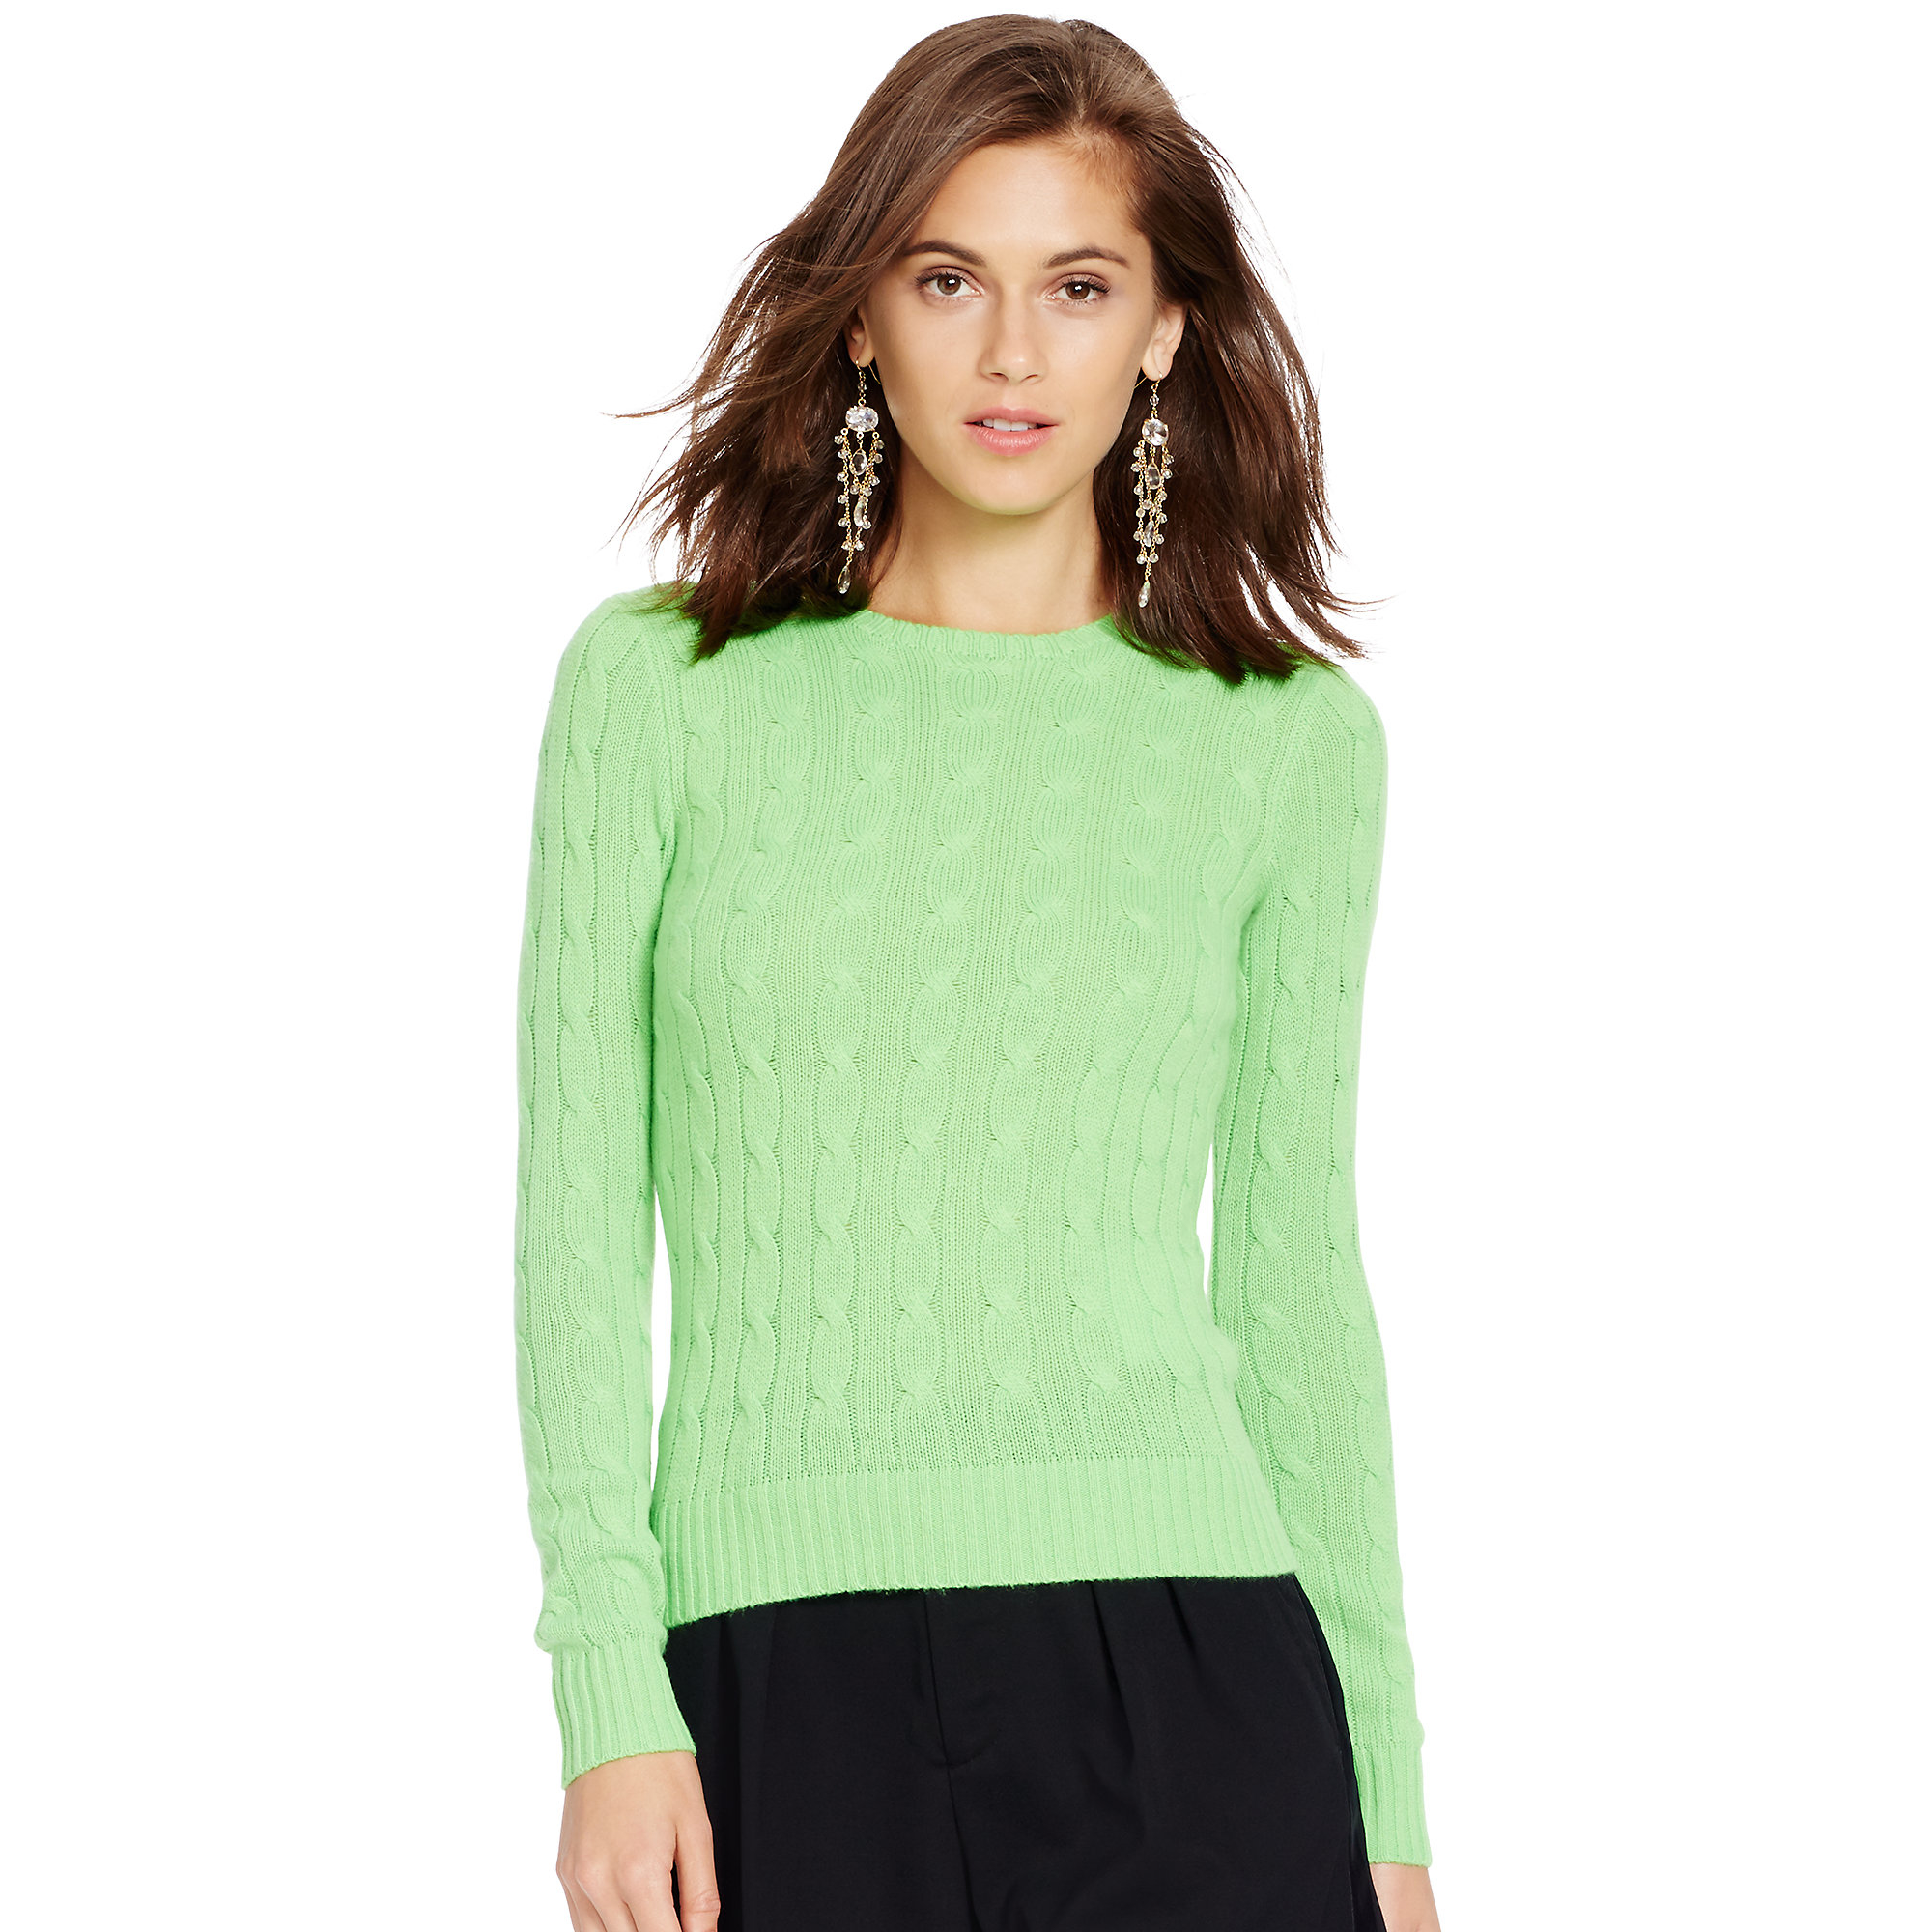 Lyst - Polo Ralph Lauren Cable-knit Cashmere Sweater in Green 6022baf7c